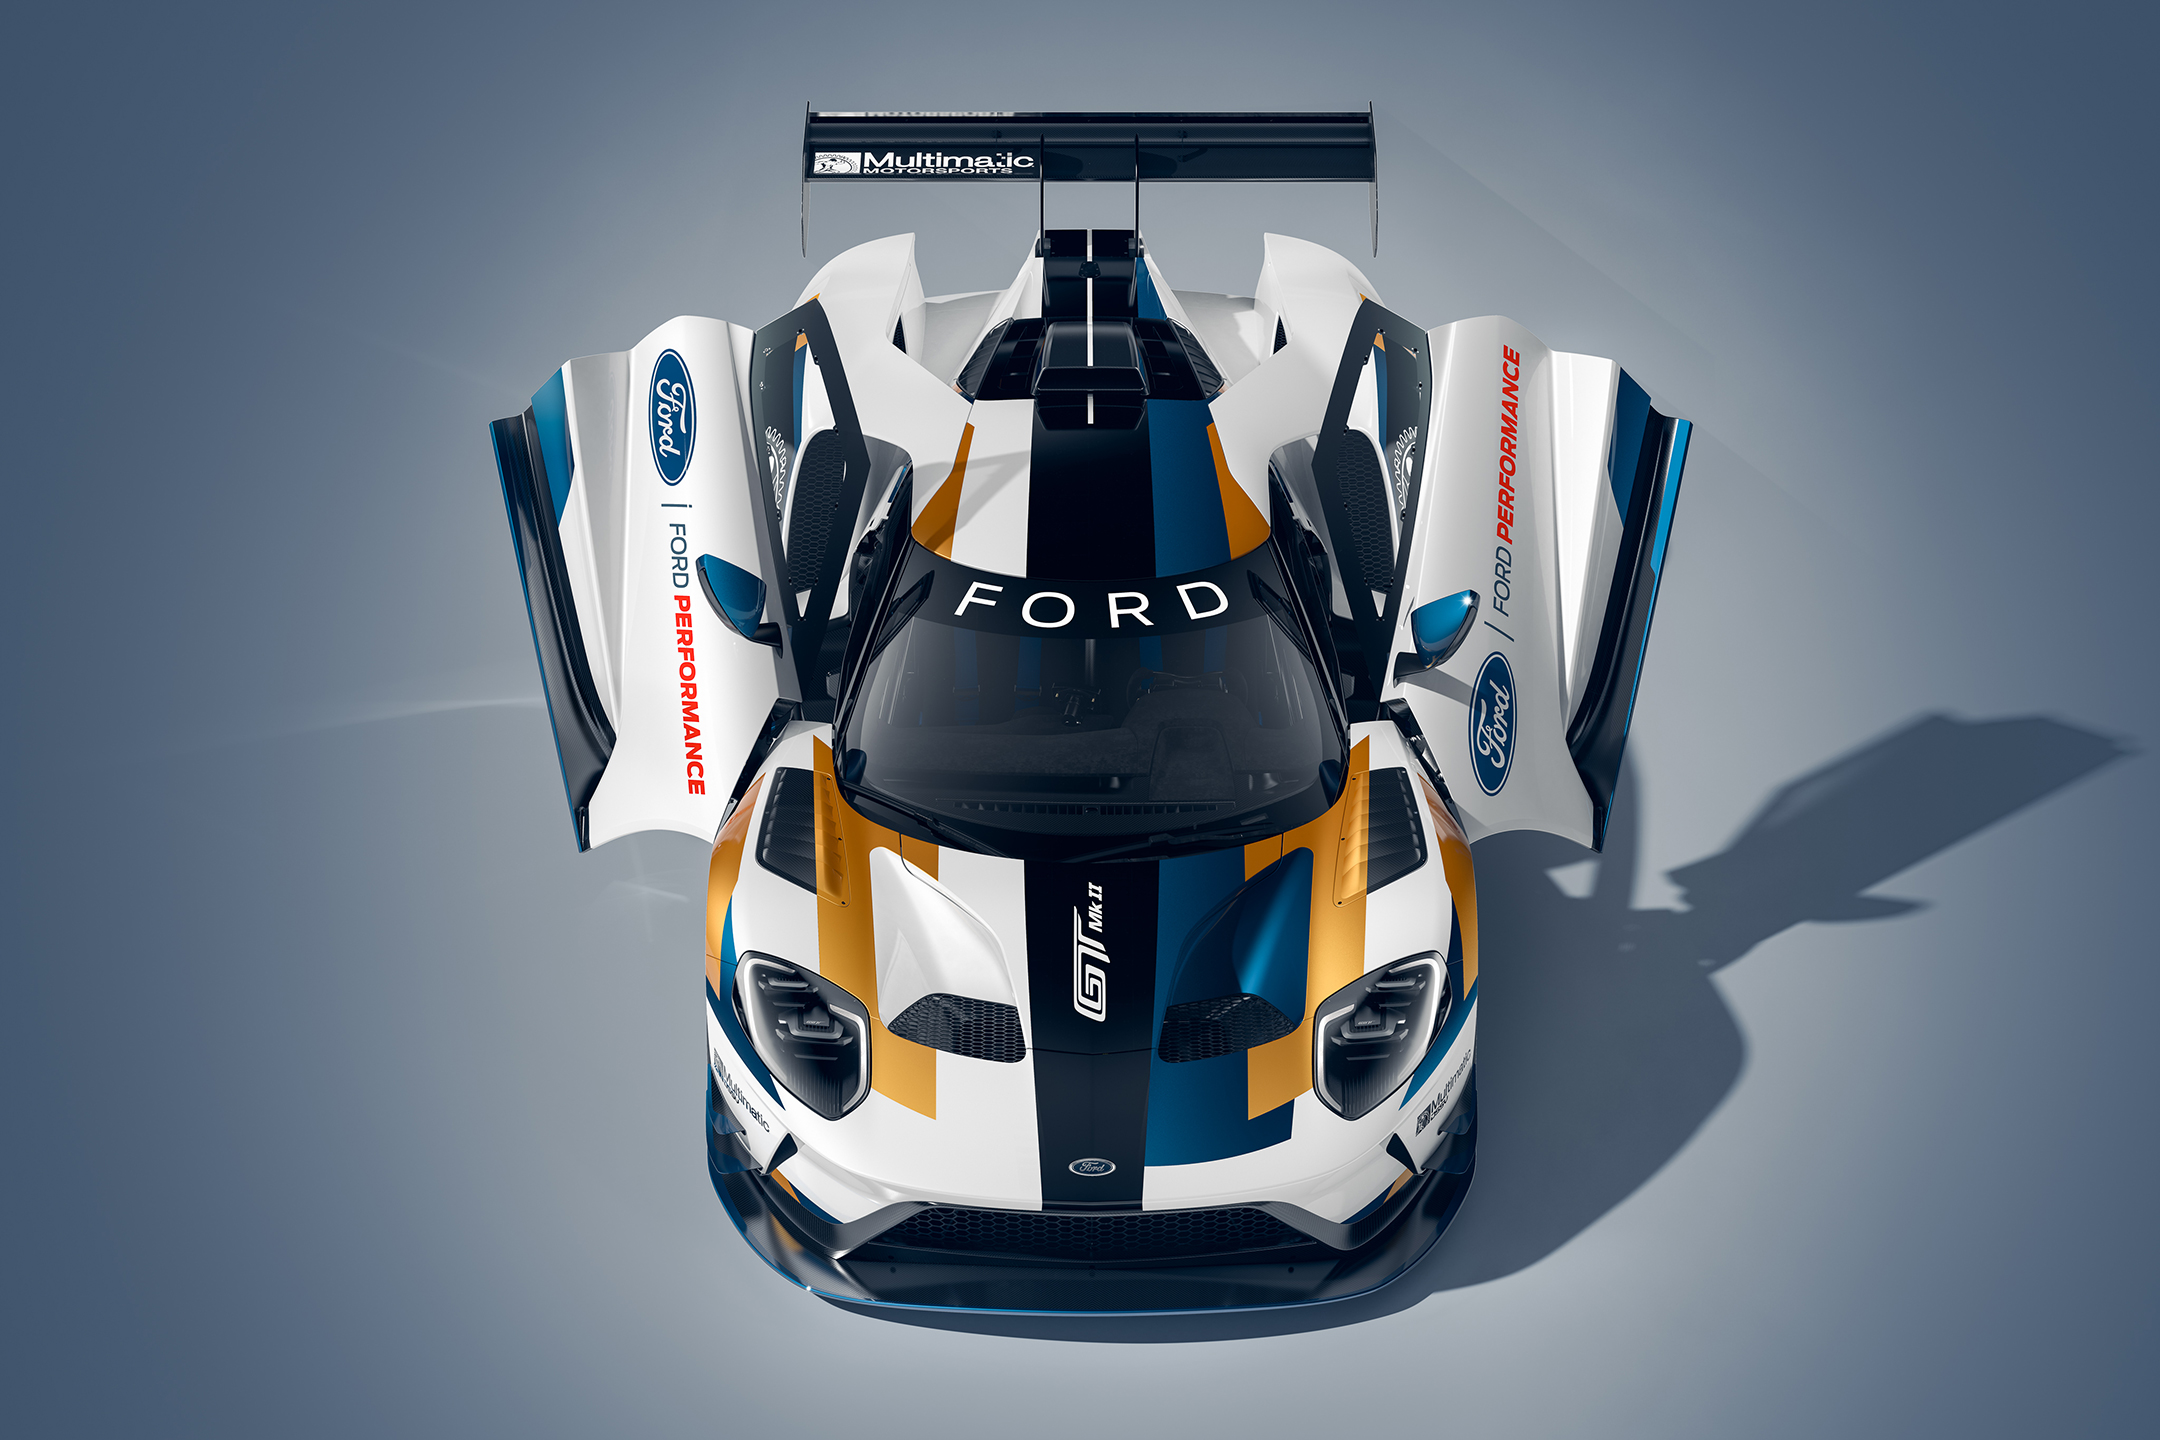 Ford GT Mk II - 2019 - front / avant - top view - open doors / portes ouvertes